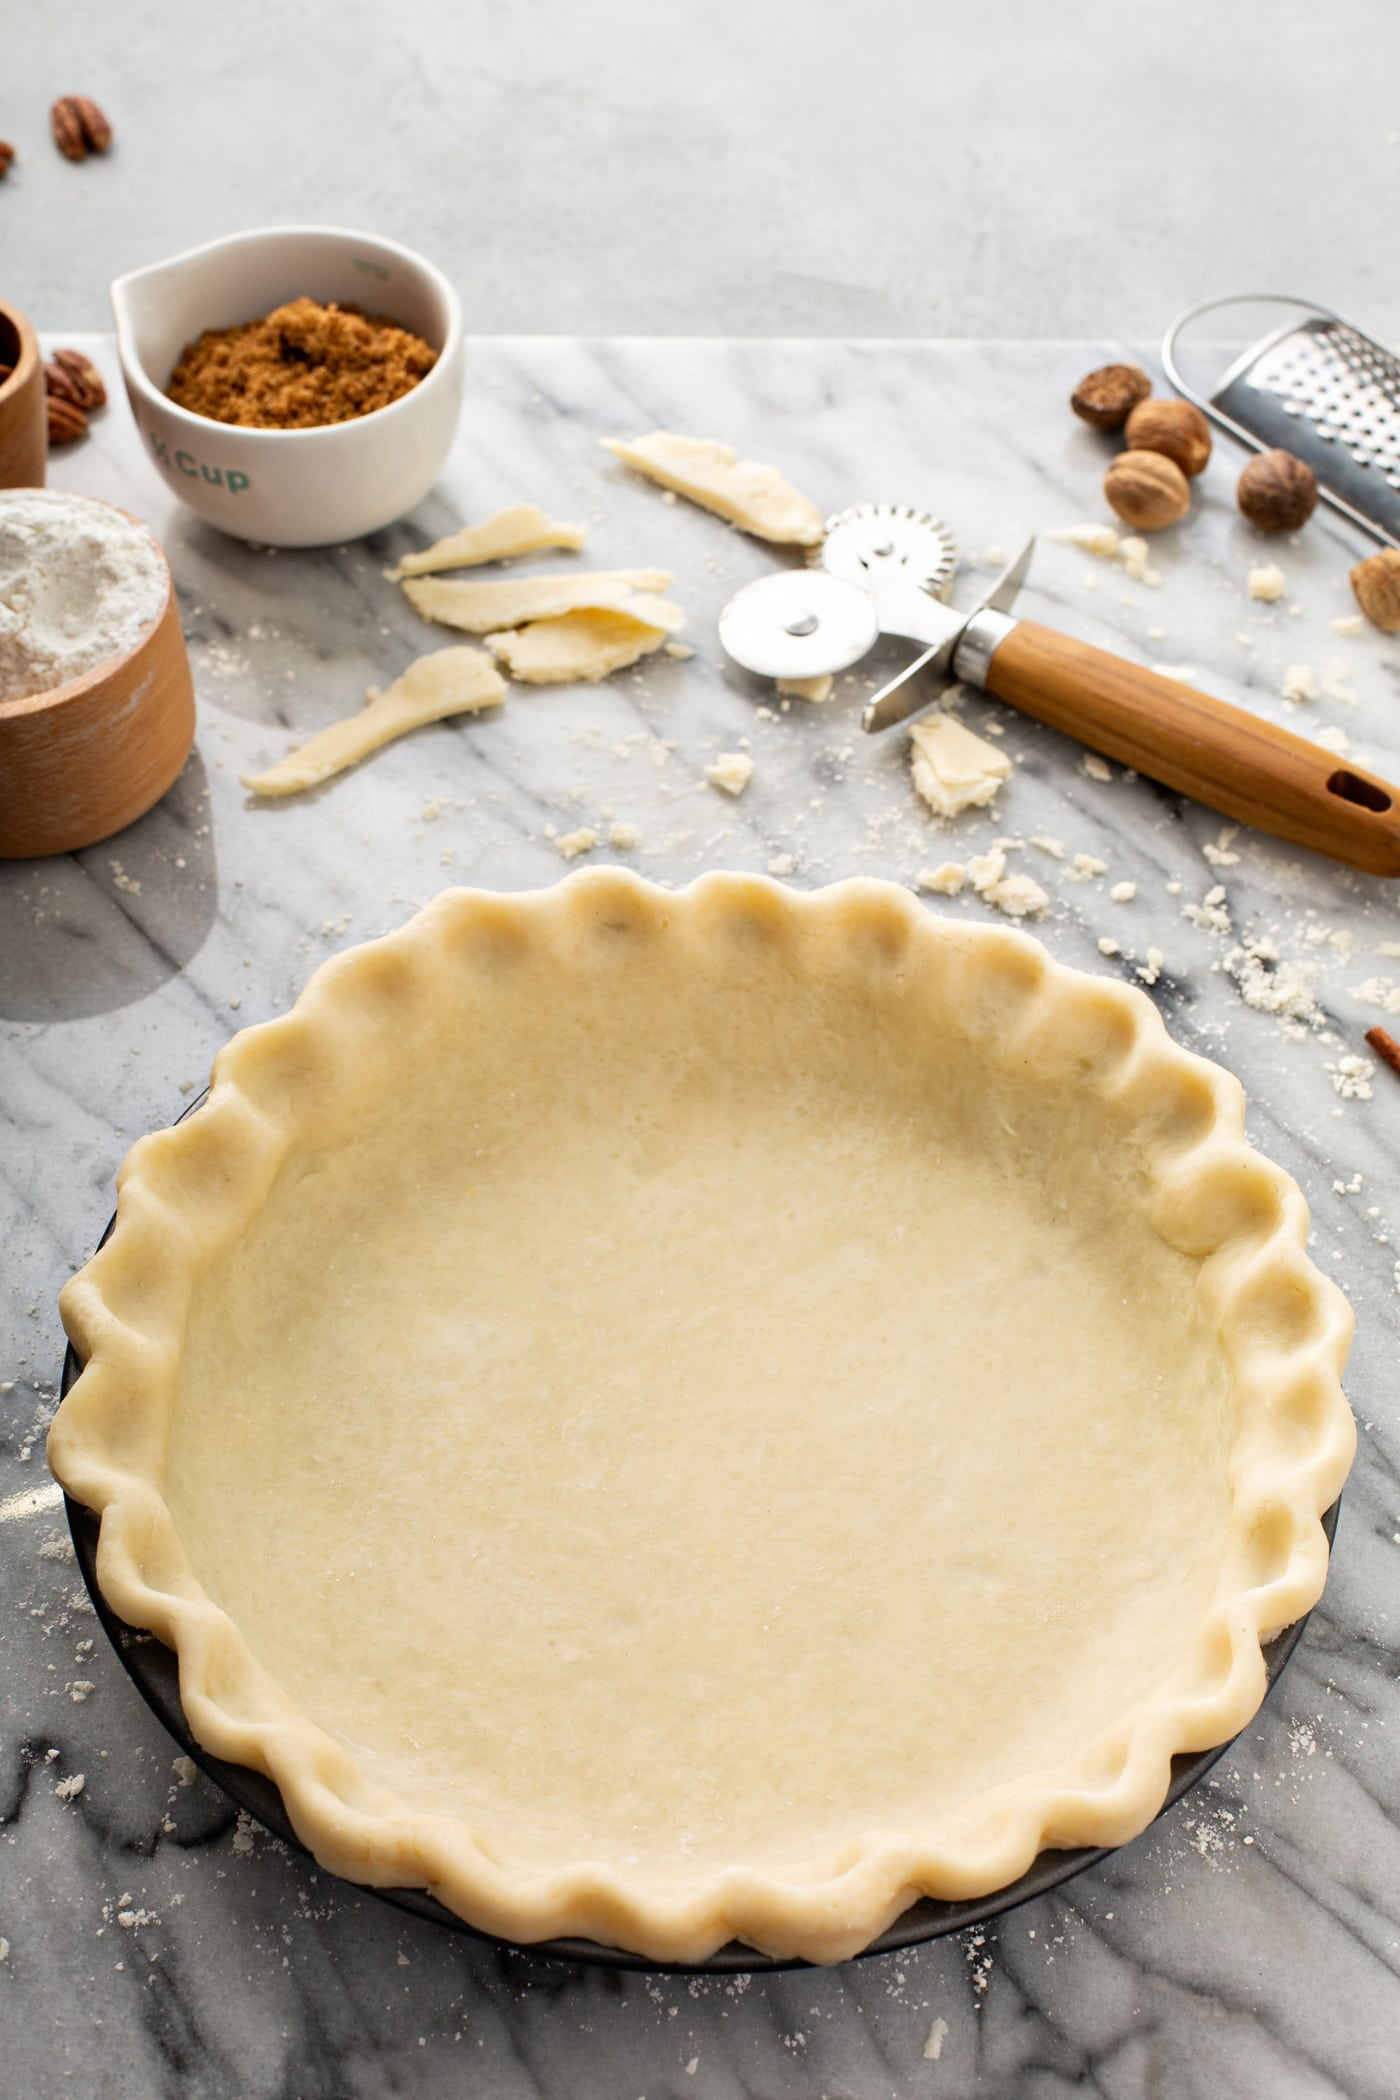 A photo of an uncooked pie crust in a pie tin sitting on a table